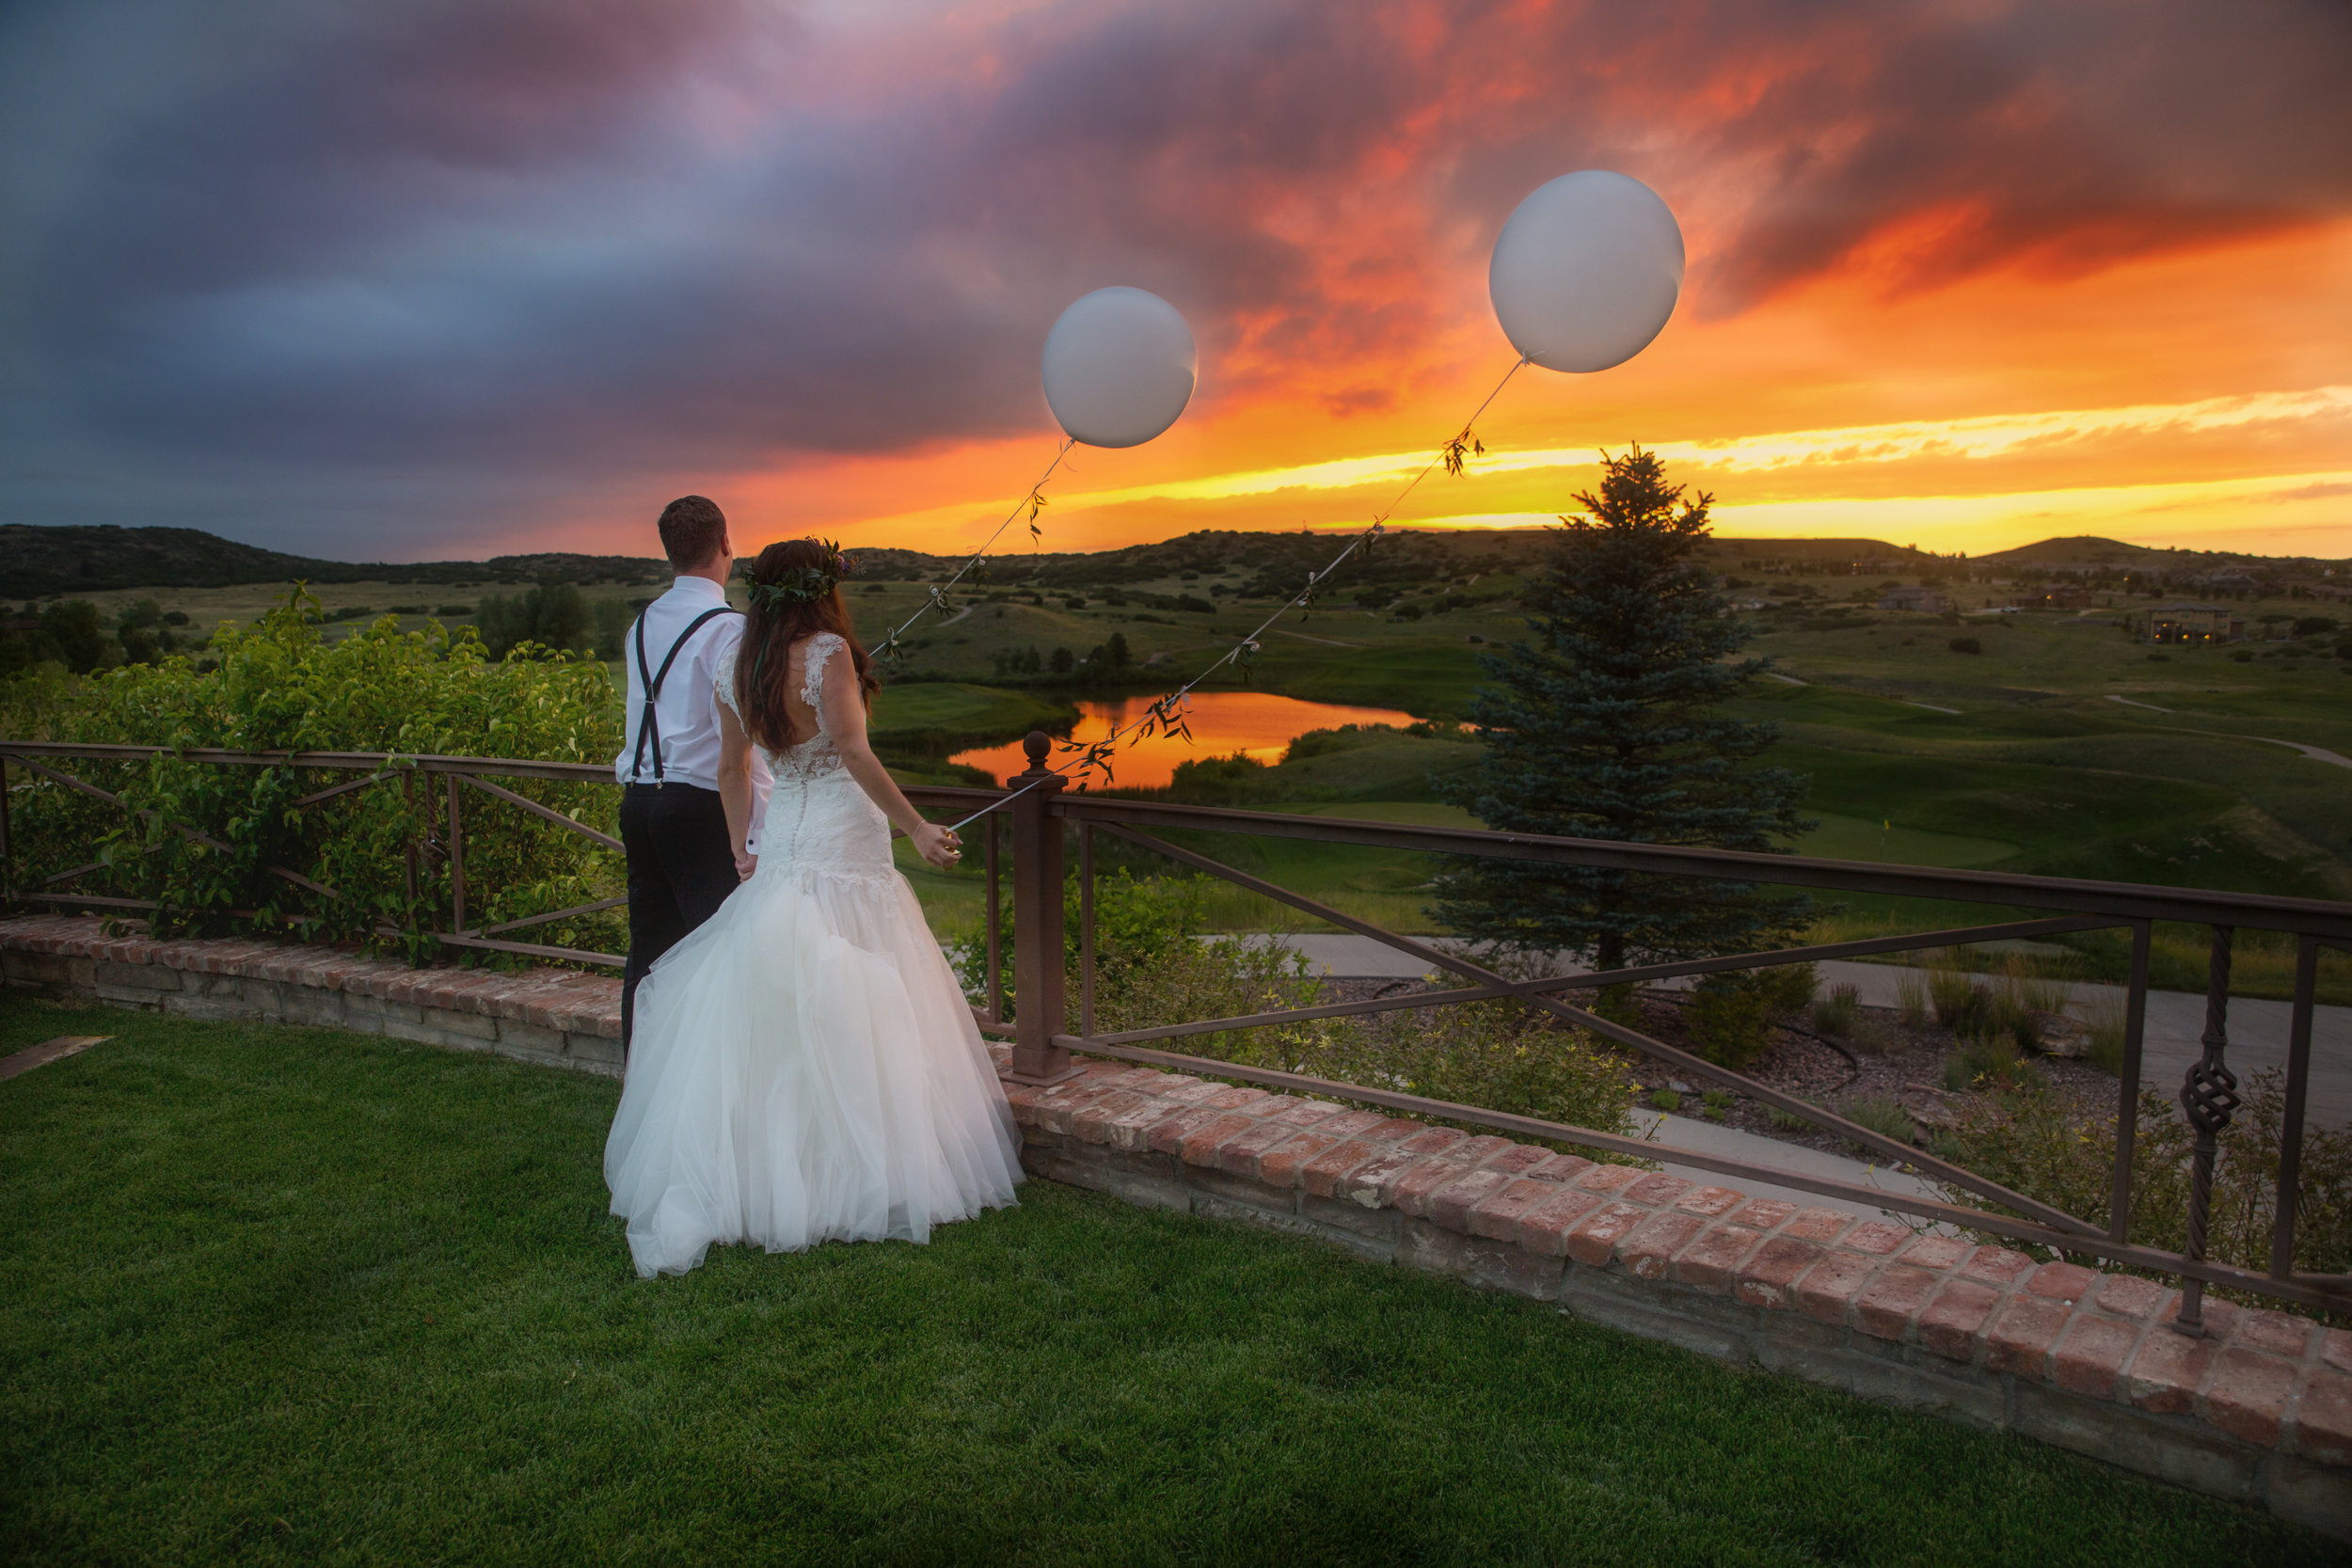 Colorado Sunsets are jaw-dropping to say the least, so let Soulshine Photography capture those moments so you can enjoy them for a lifetime!